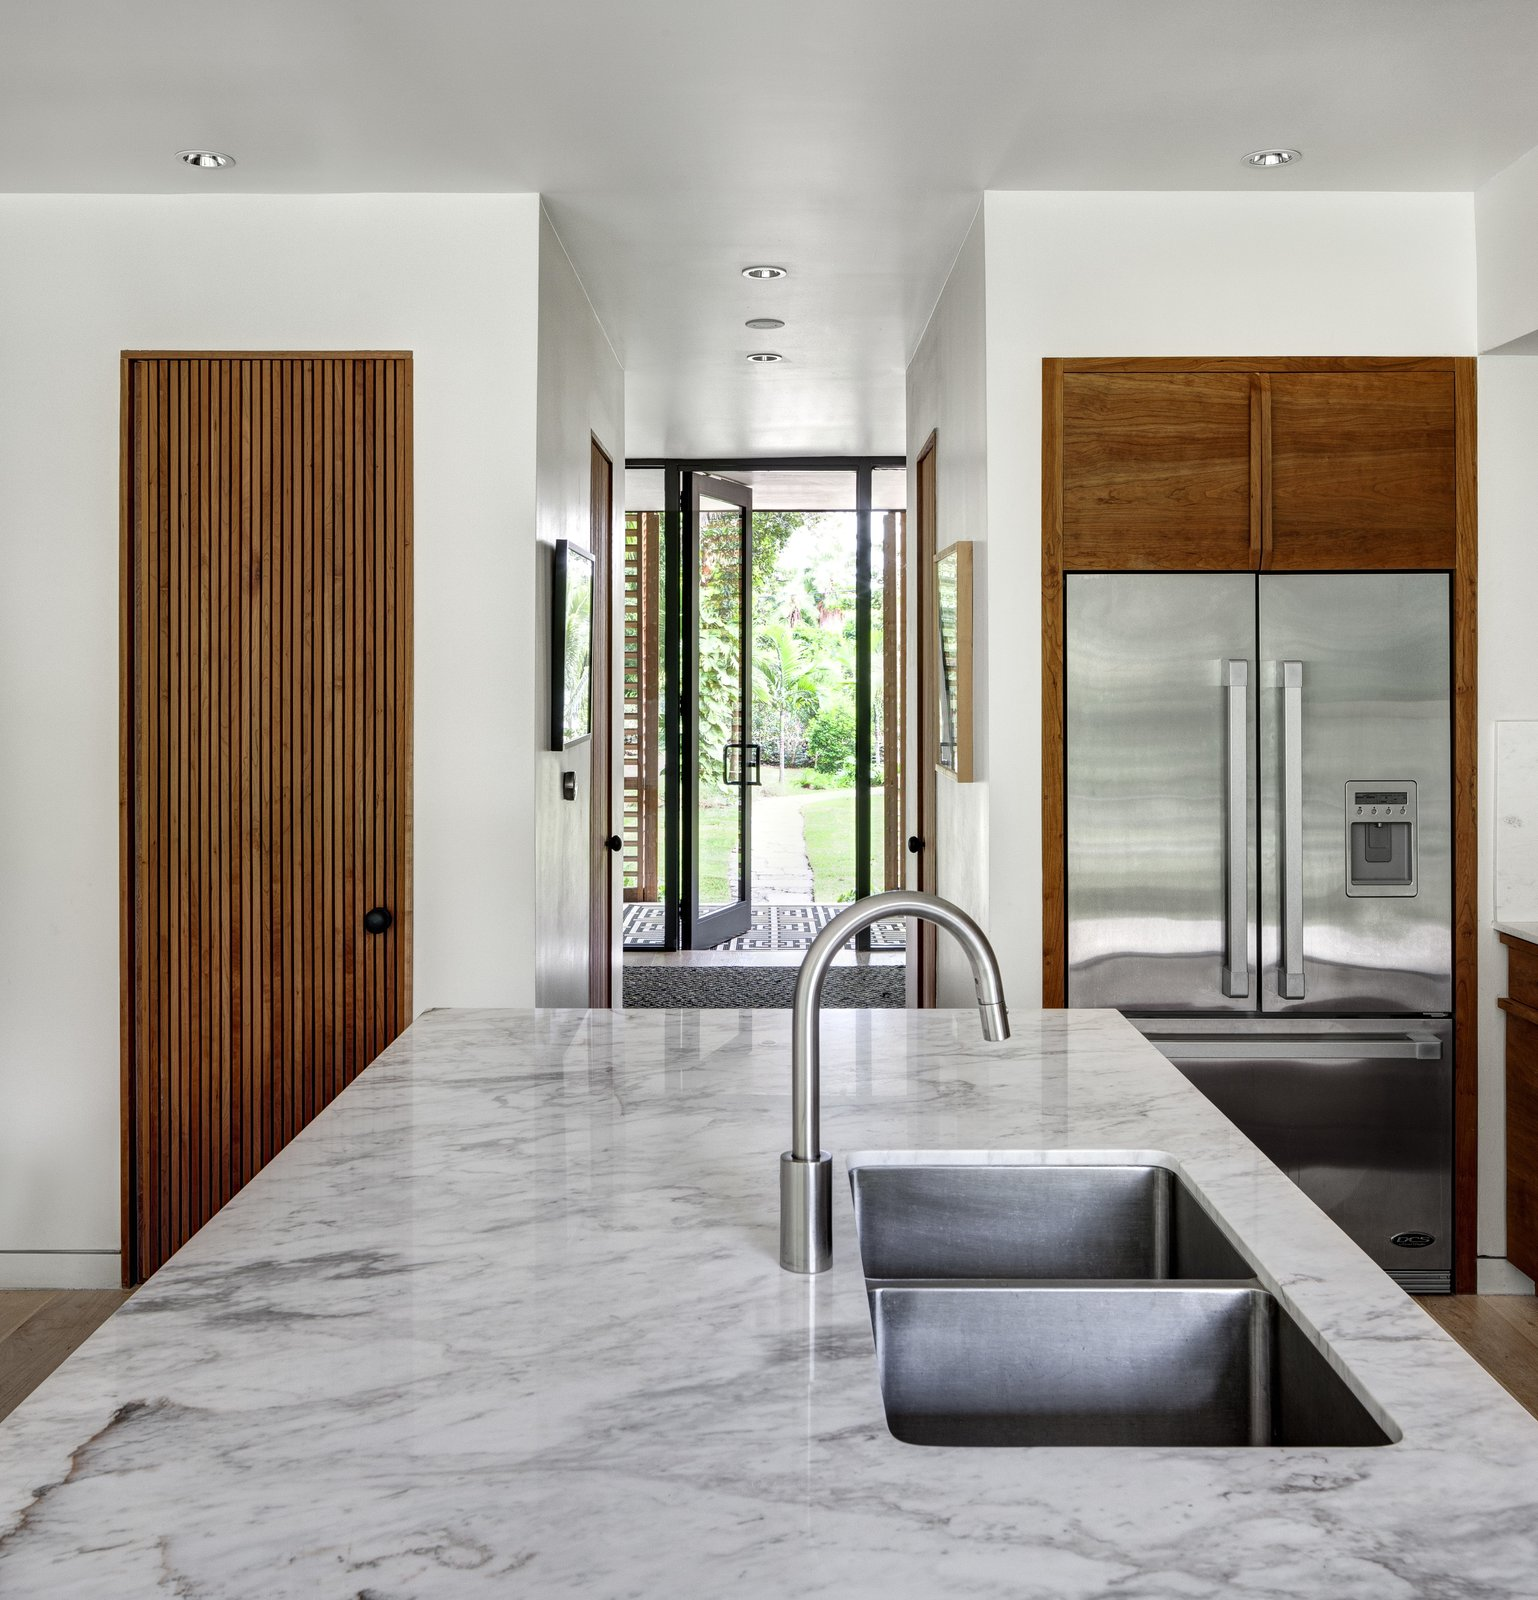 Himalayan marble countertops and stainless steel appliances lend moments of clean modernism to the kitchen, which is flooded with bright light thanks to patio windows that open to the yard. Tagged: Kitchen and Marble Counter.  Brillhart House by Emma Janzen